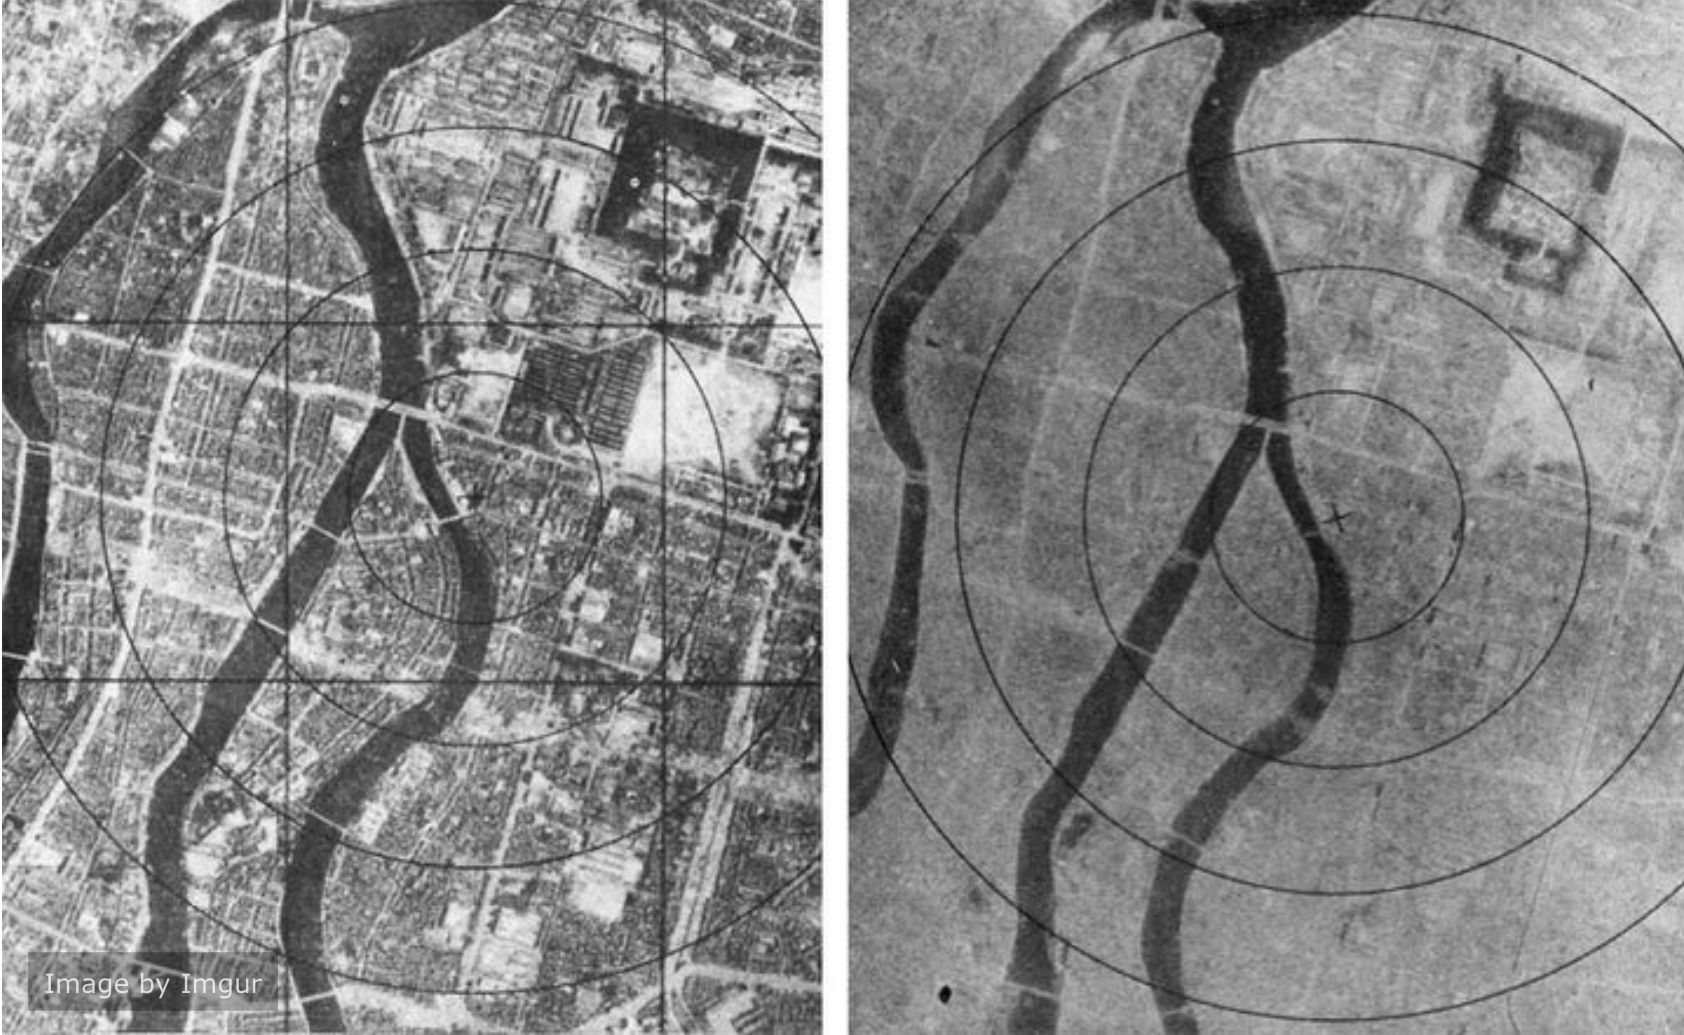 Hiroshima Before And After The Atomic Bomb That Hit On August 6